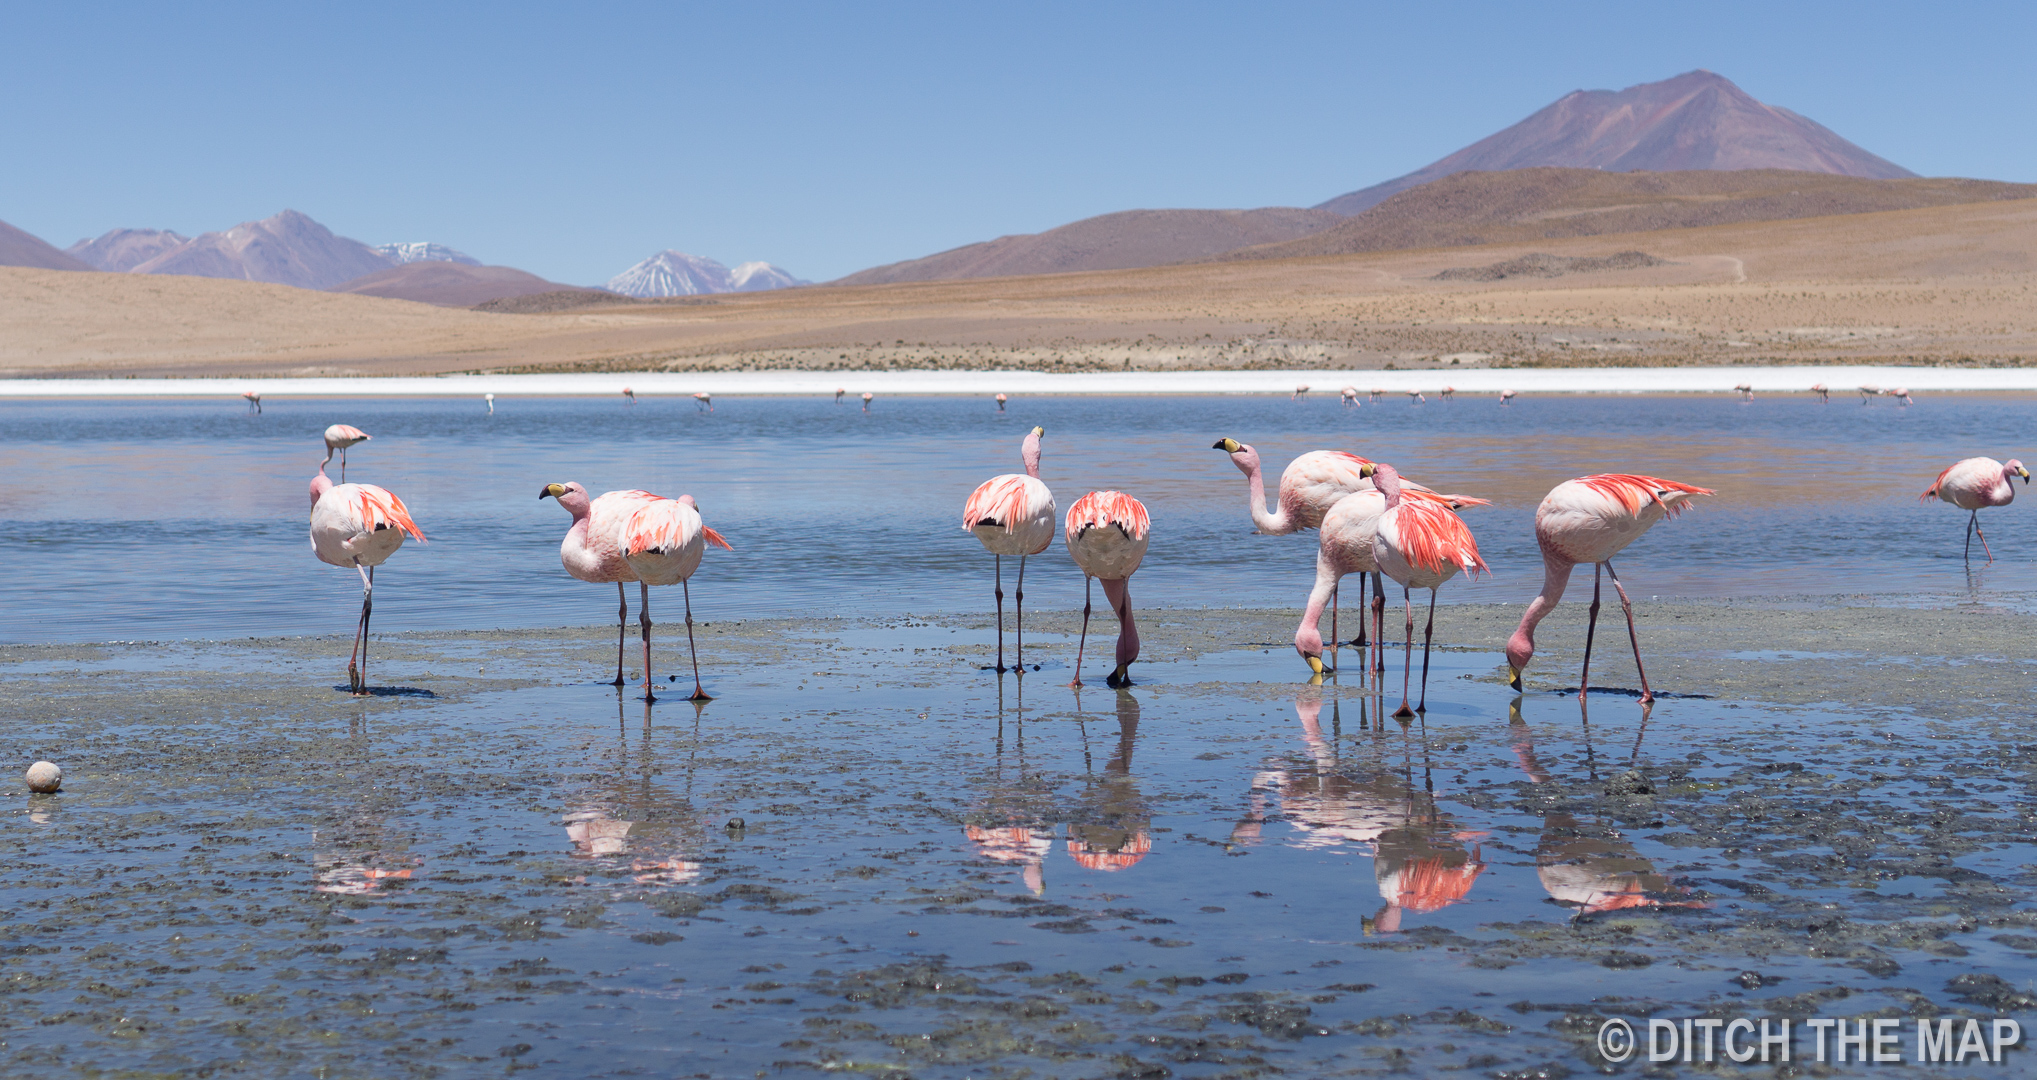 One of the many lagoons we visited with flamingos in Salar de Uyuni, Bolivia